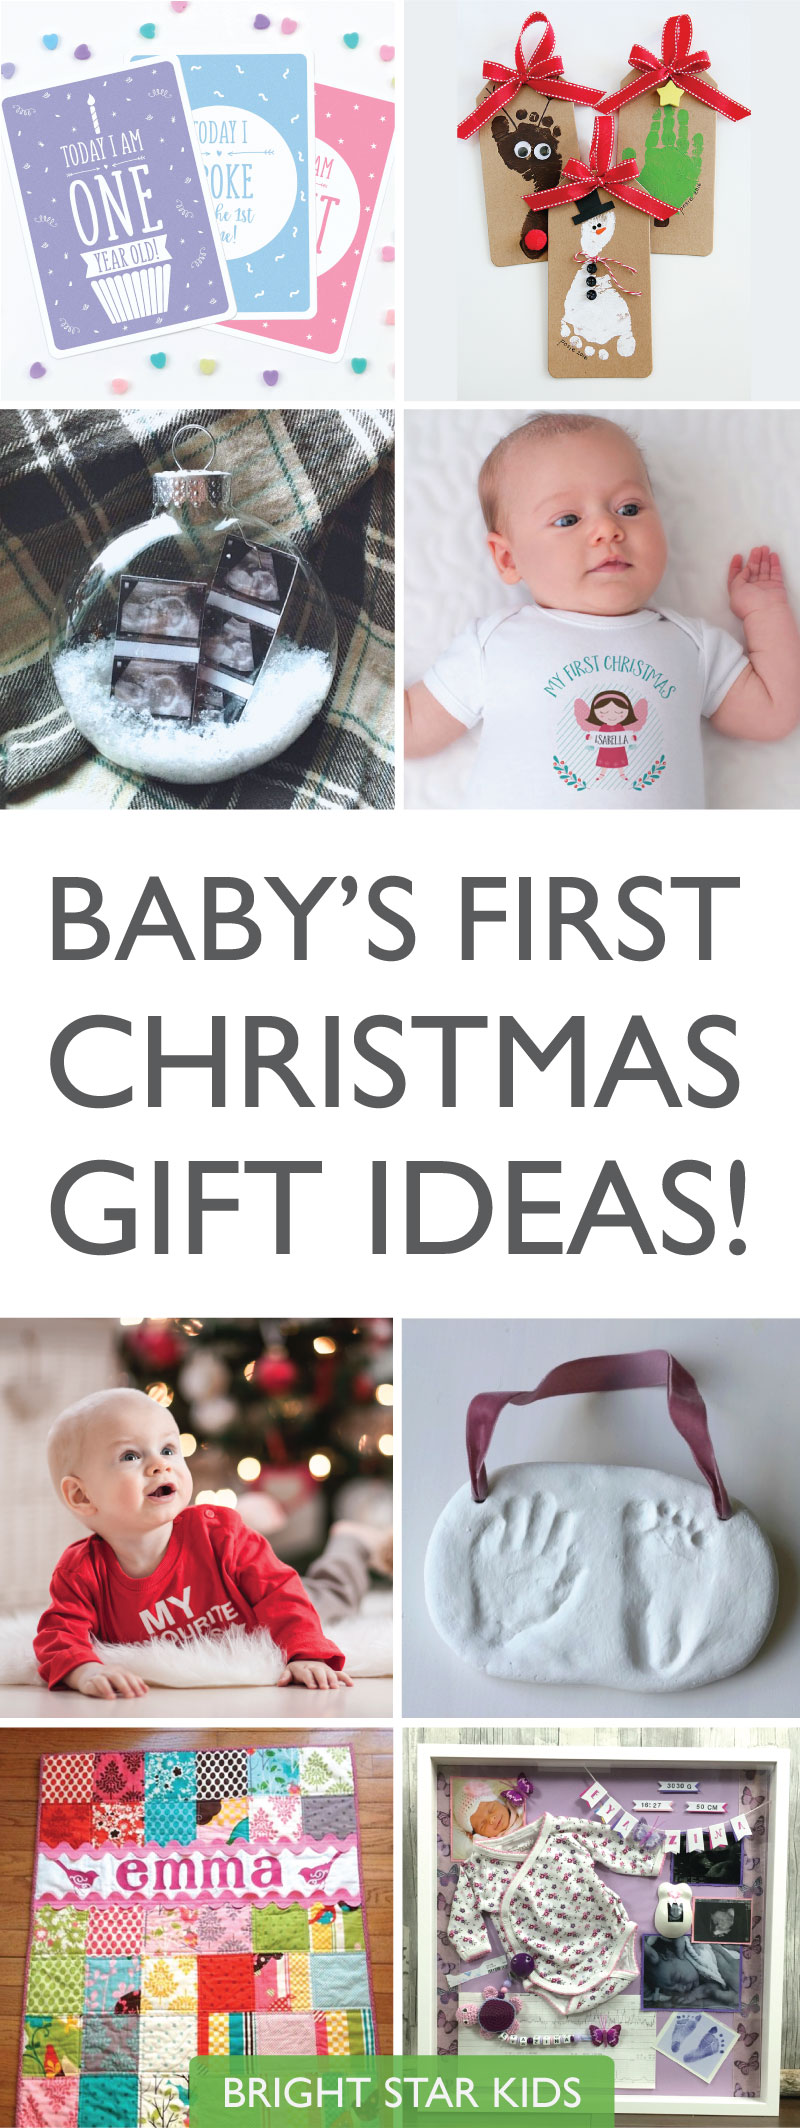 We Hope You Enjoyed Reading Our List Of Babyu0027s First Christmas Gift Ideas!  We Love Receiving Photos, So If You Try Any Of These Ideas Please Feel Free  To ...